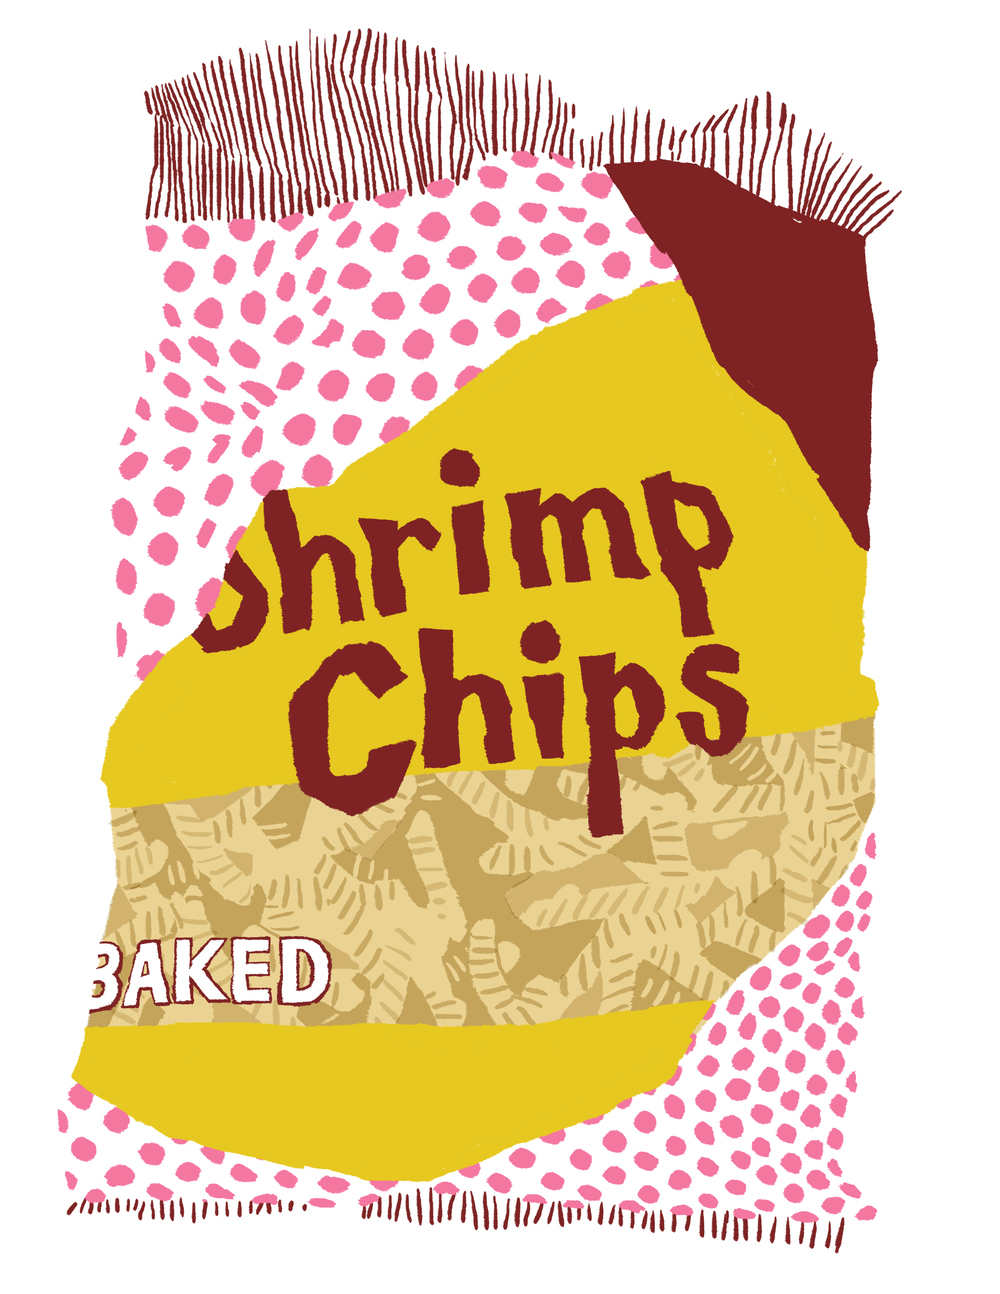 I didn't have any fruit around to draw but I did have an empty Shrimp Chip bag.